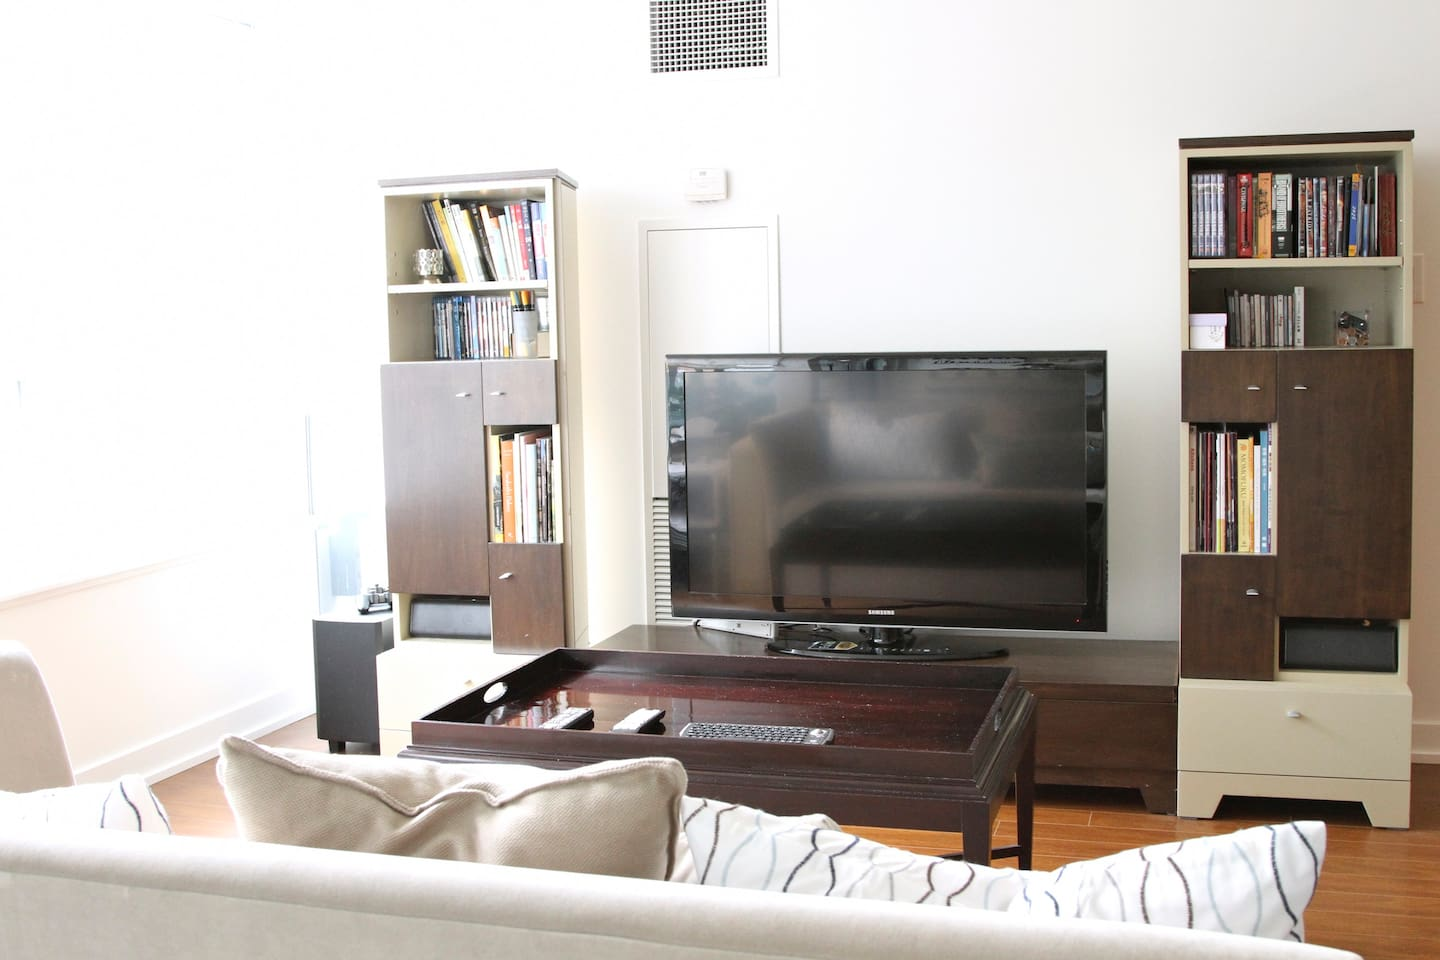 Family Room With TV, HIFI and BookShelf